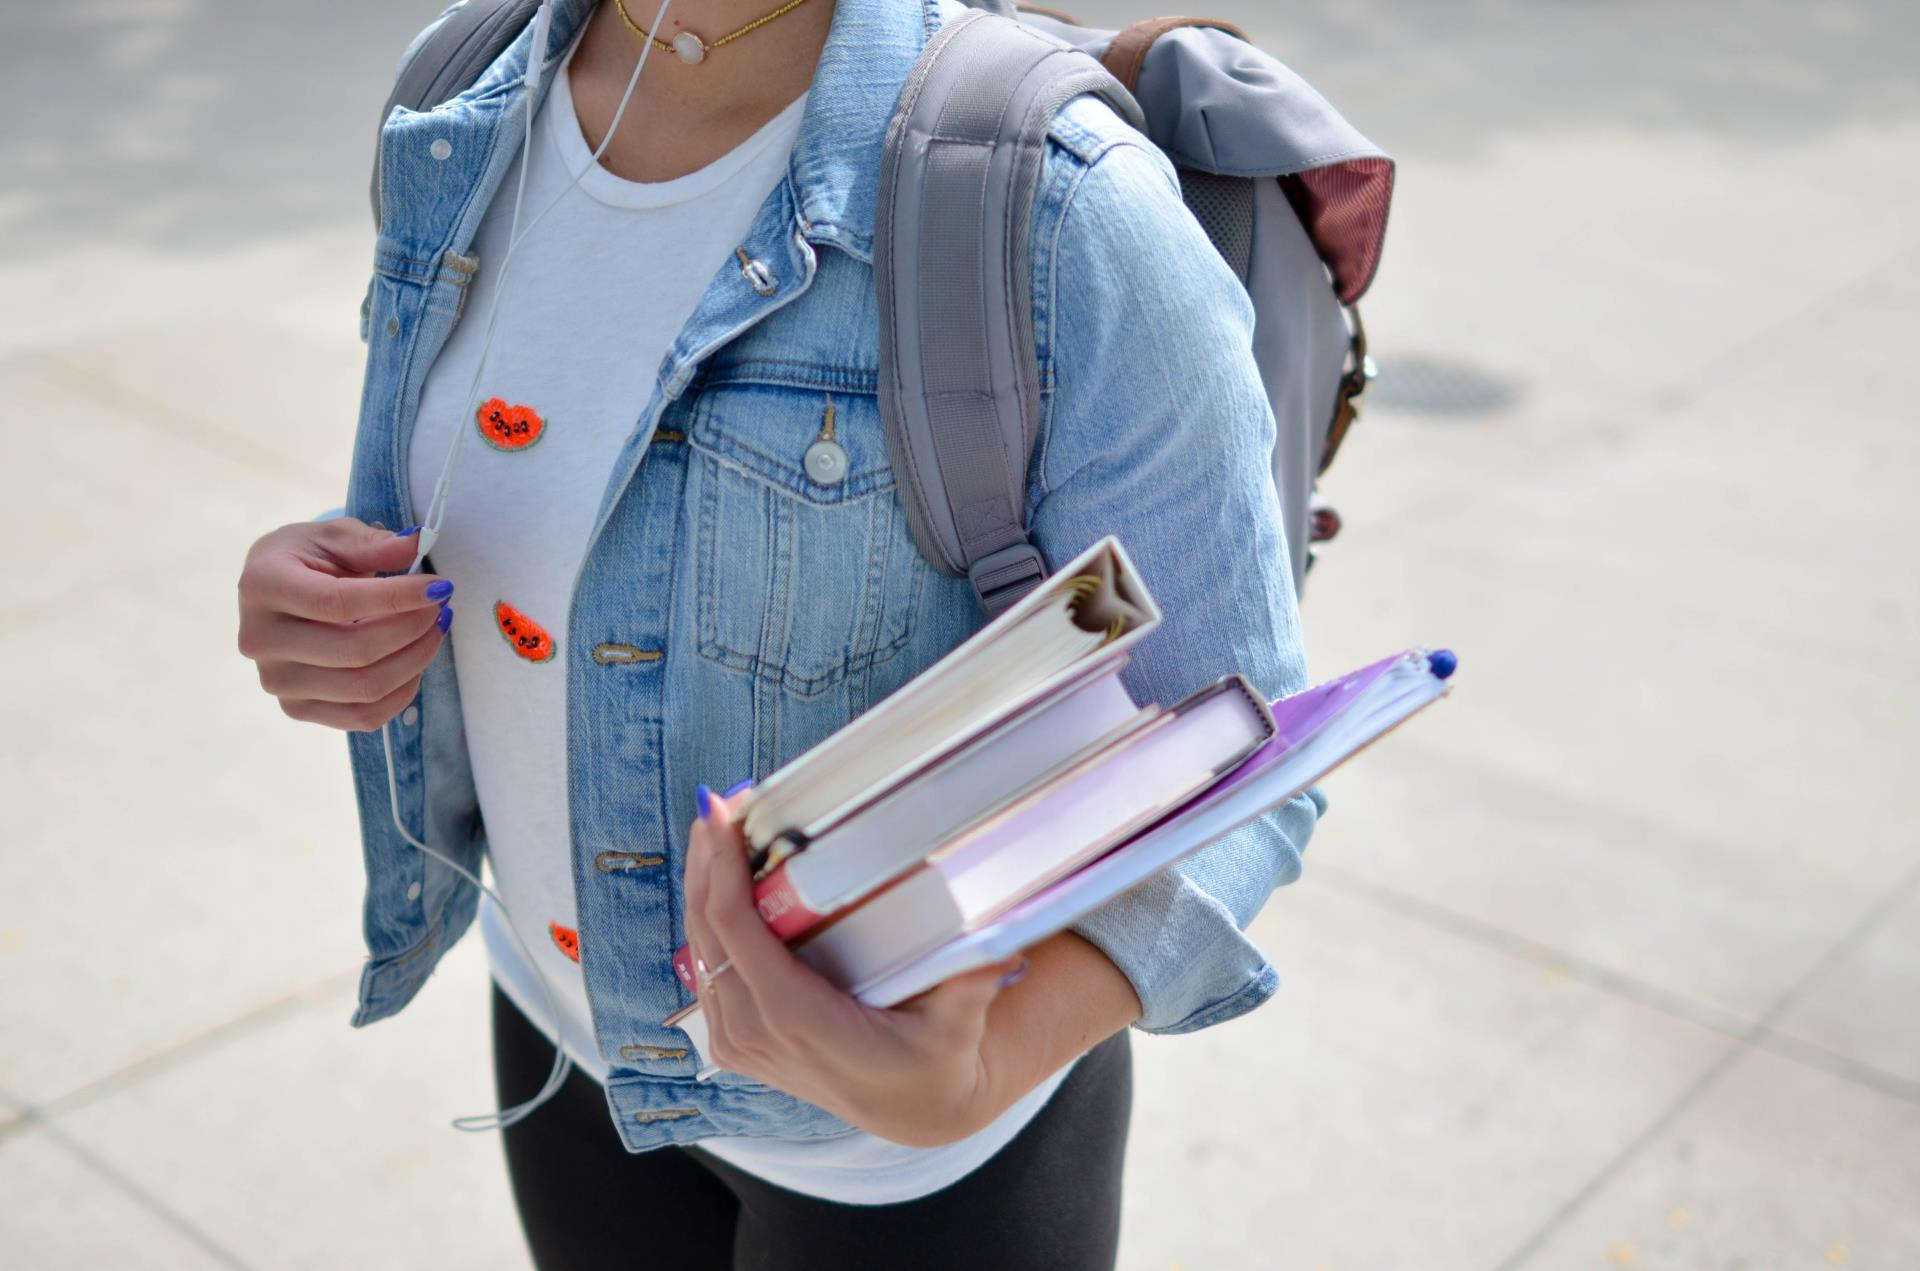 This is a photo of a girl carrying notebooks and wearing a backpack.